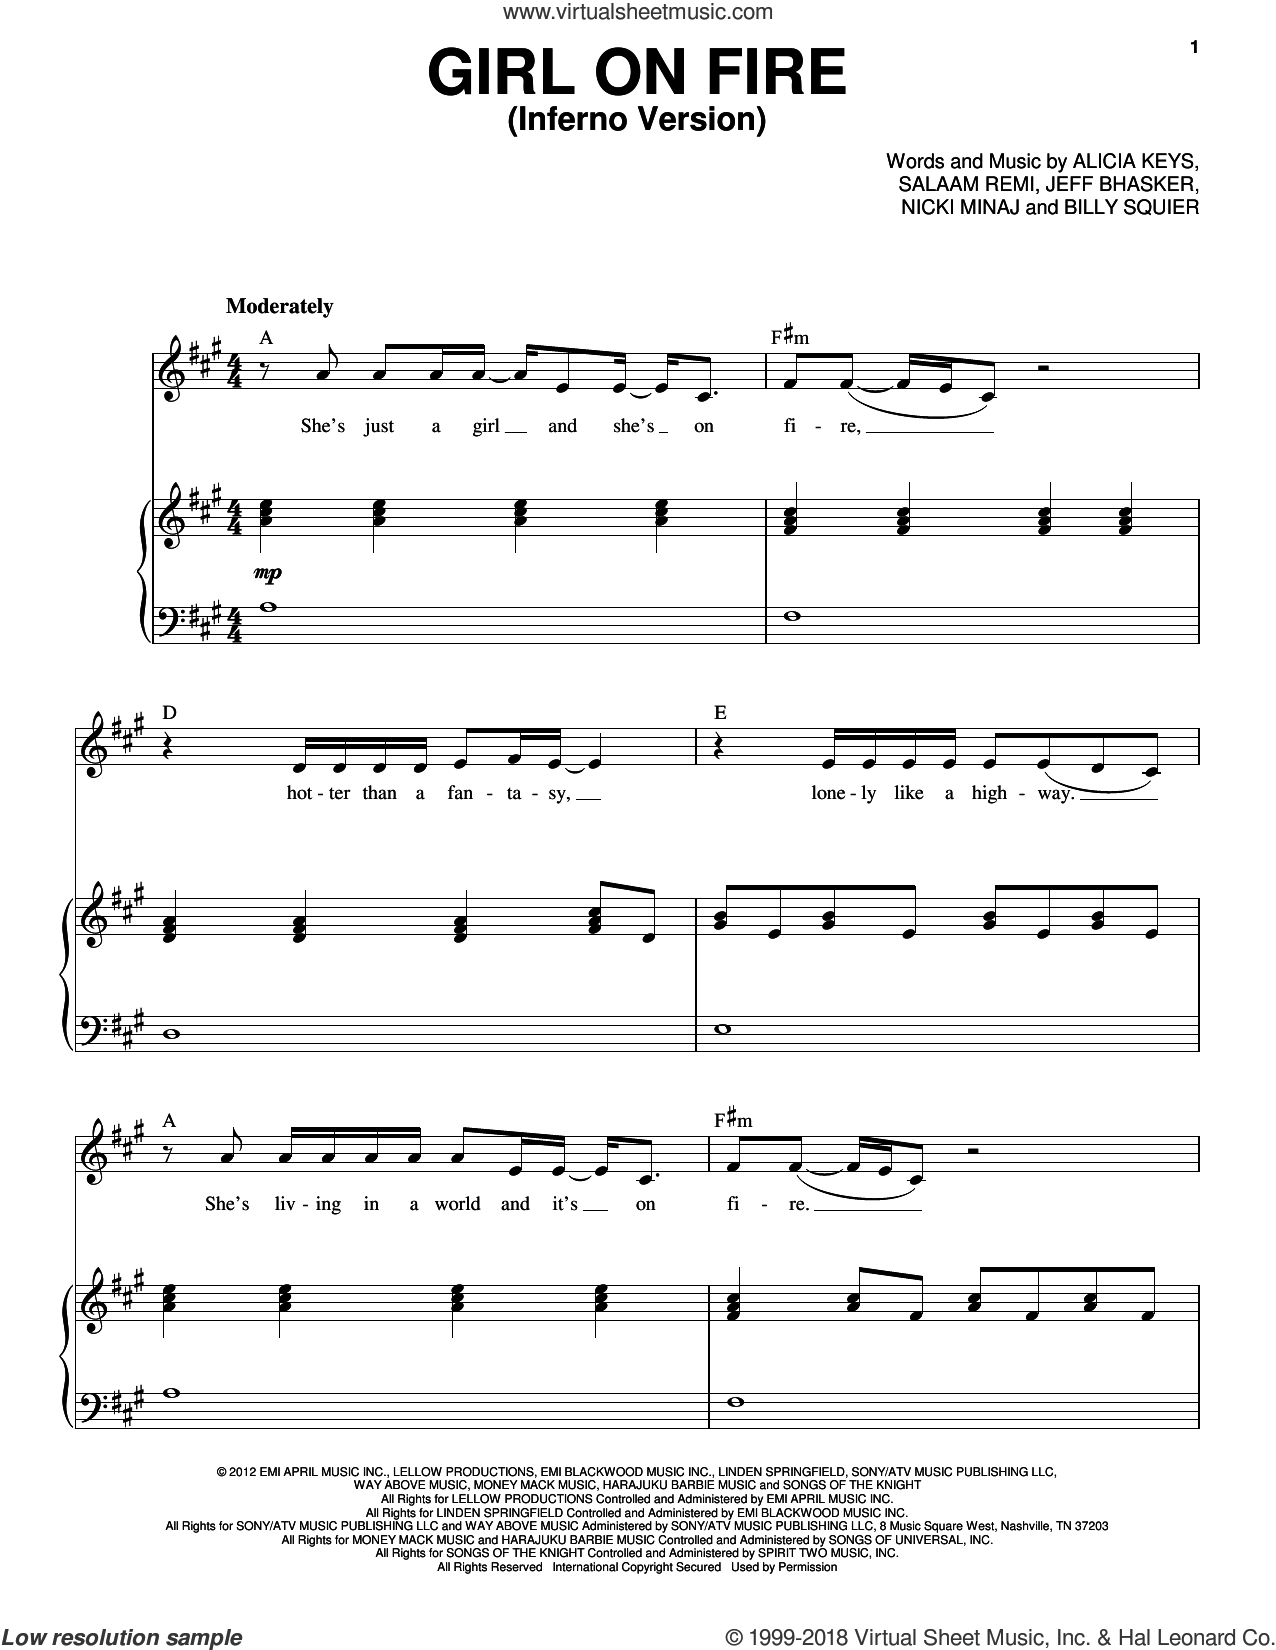 Girl On Fire (Inferno Version) sheet music for voice and piano by Alicia Keys Featuring Nicki Minaj, Alicia Keys, Billy Squier, Jeff Bhasker, Nicki Minaj and Salaam Remi, intermediate skill level